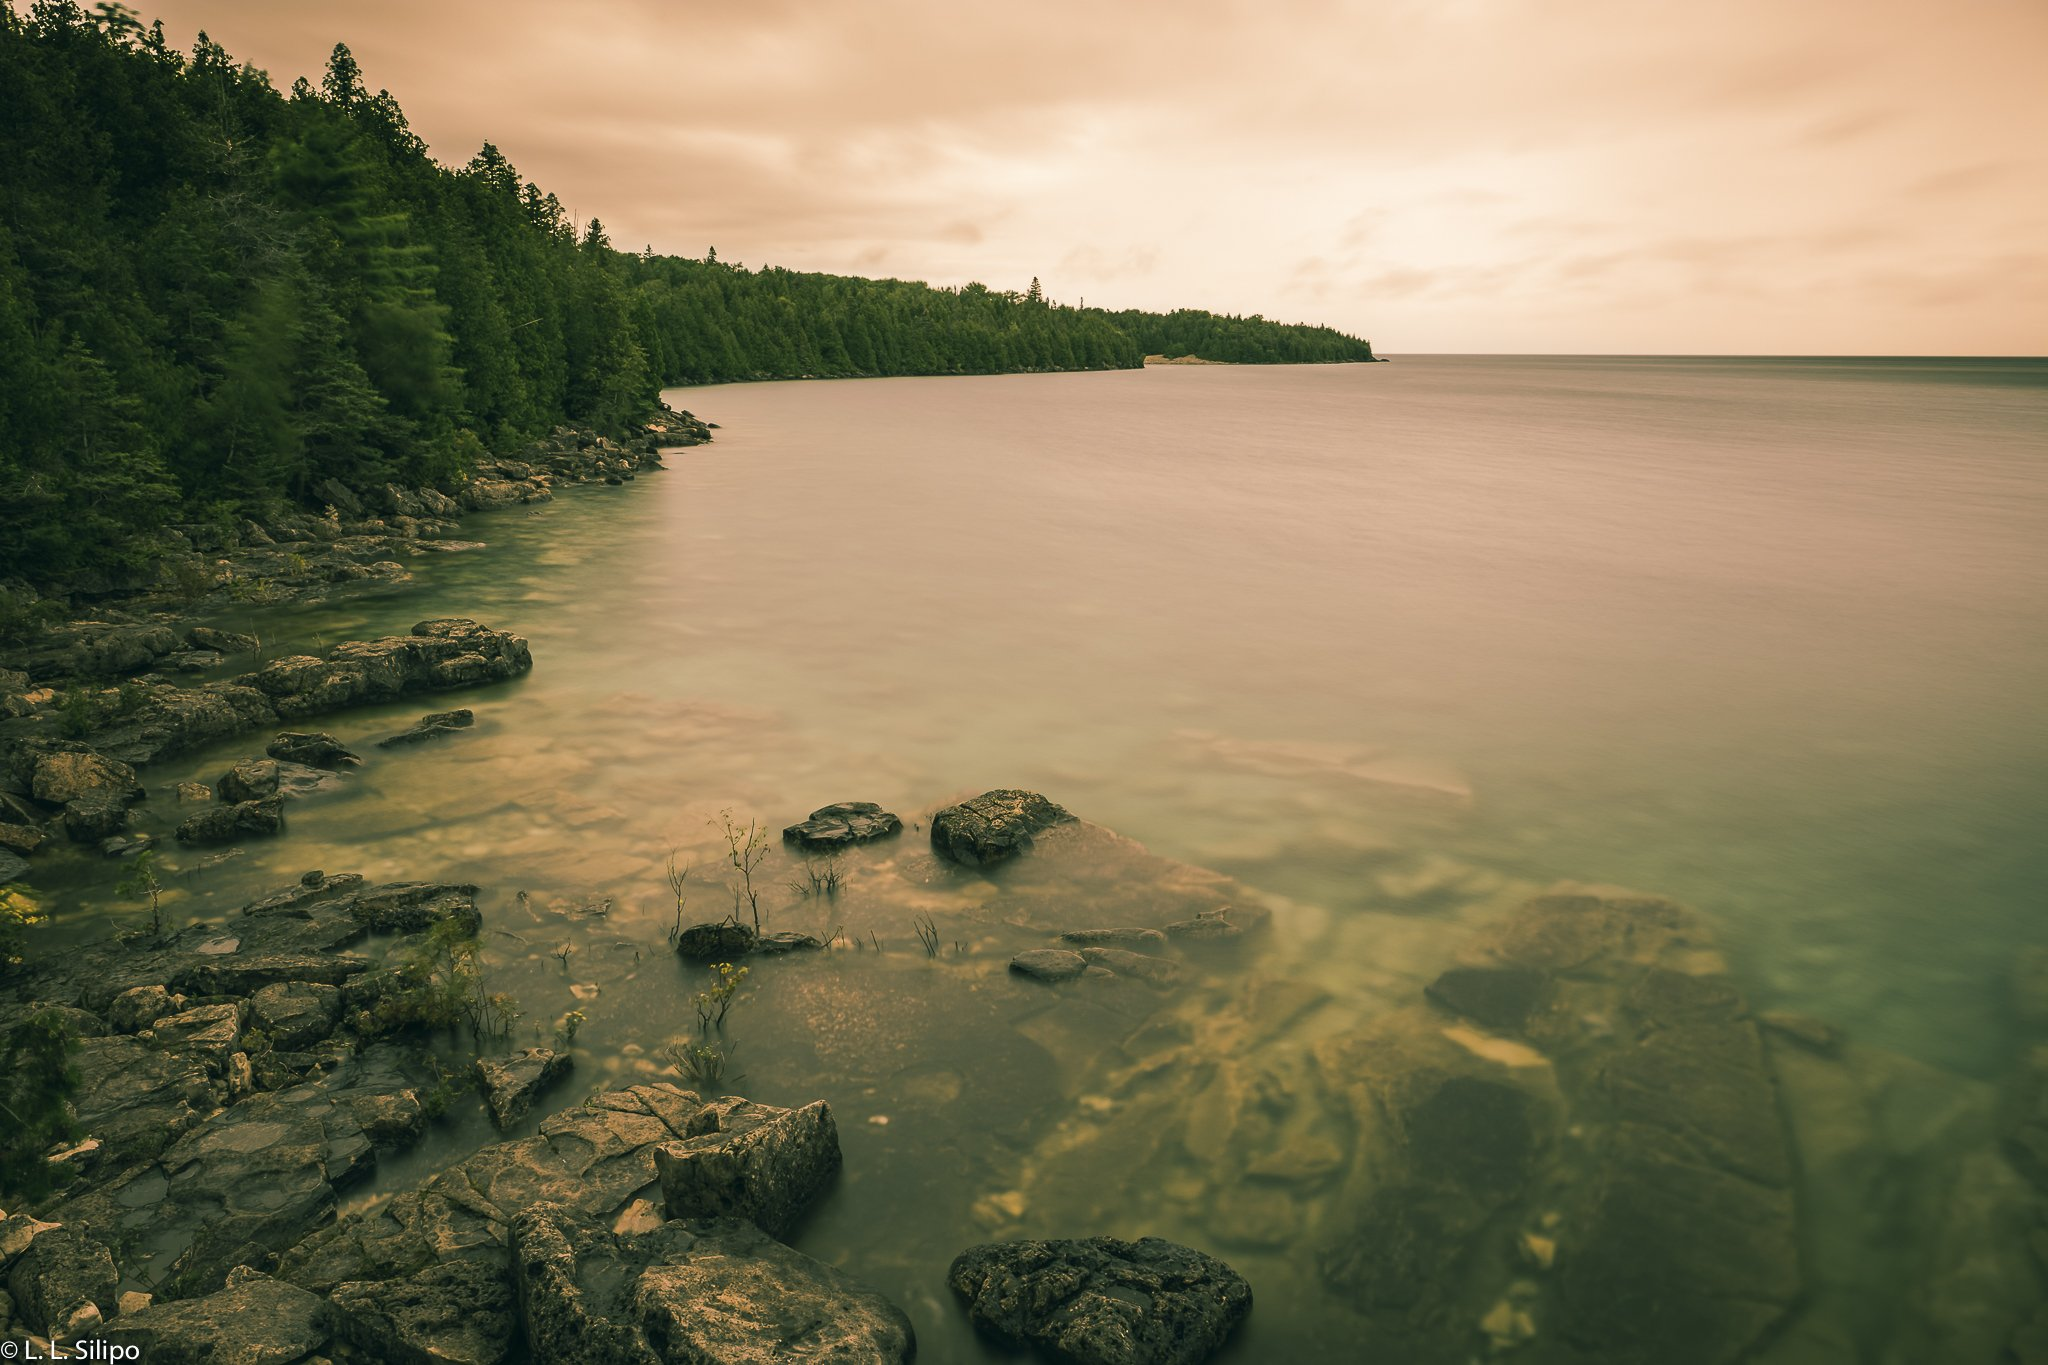 bay, beautiful, biosphere, blue, bruce, canada, clear, georgian, hiking, huron, lake, national, nature, ontario, park, peninsula, reserve, rock, rocky, shore, sky, summer, tobermory, water, white